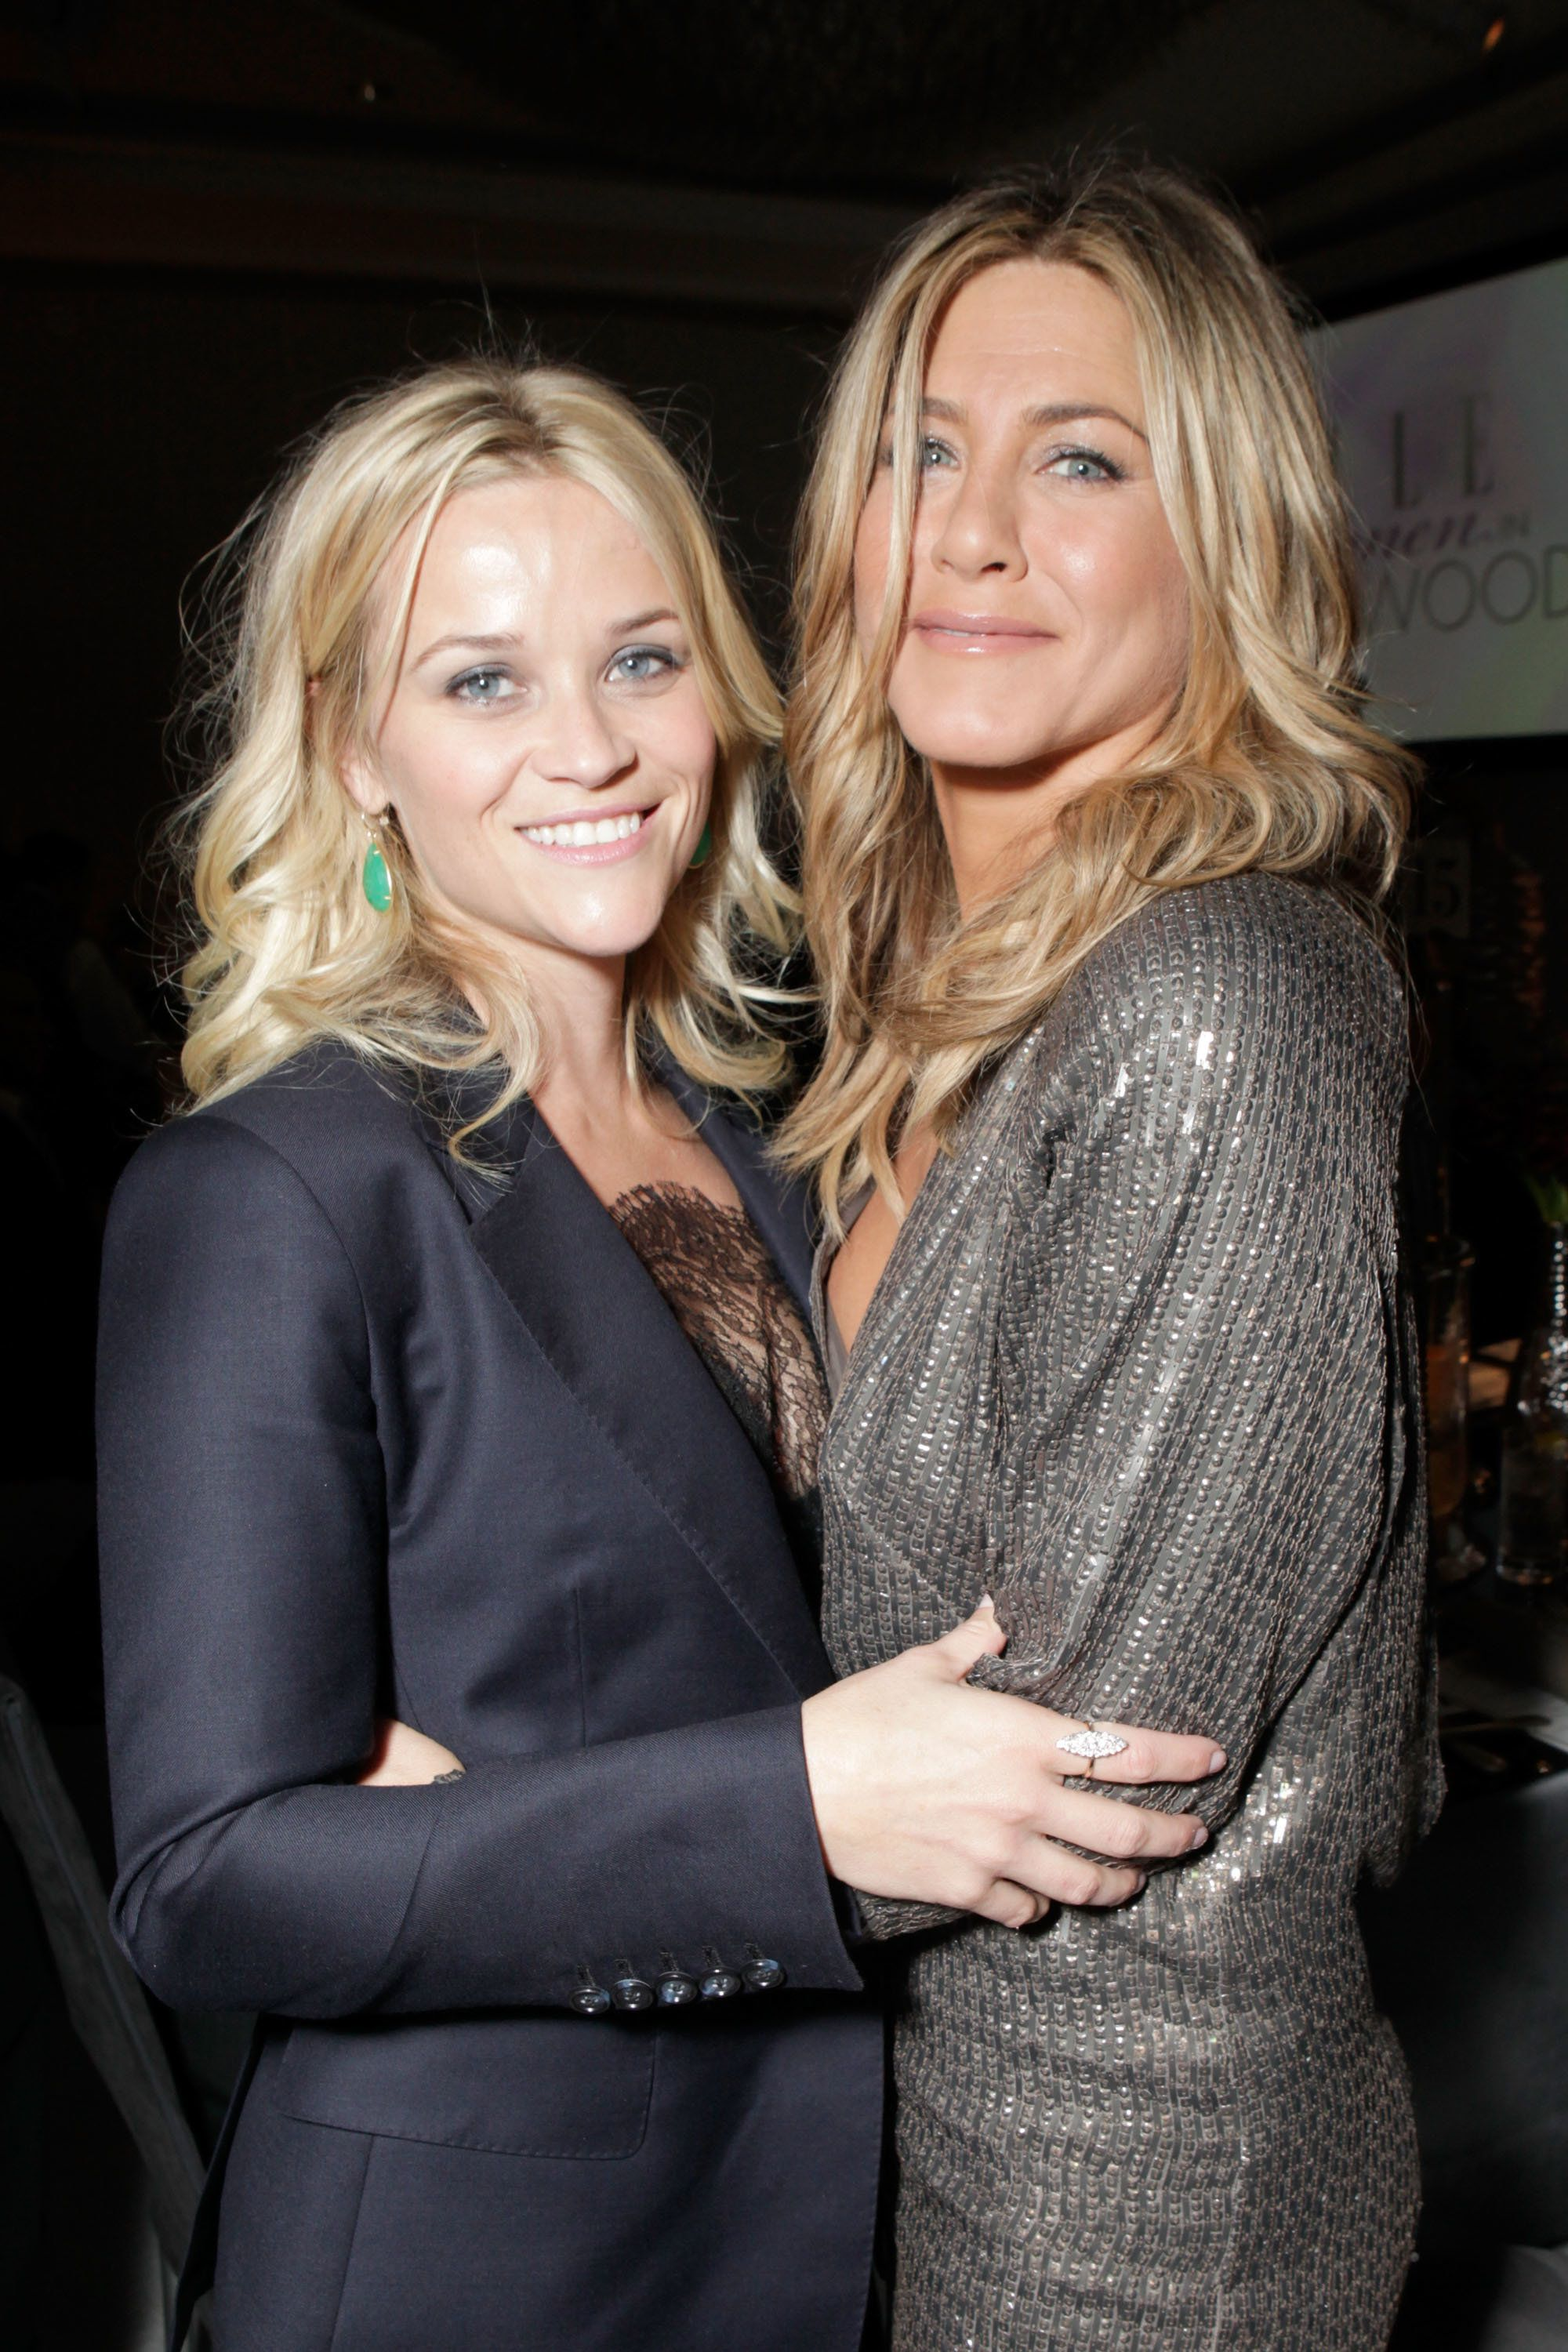 Jennifer Aniston Set To Return To TV Alongside Reese Witherspoon, 13 Years After 'Friends'